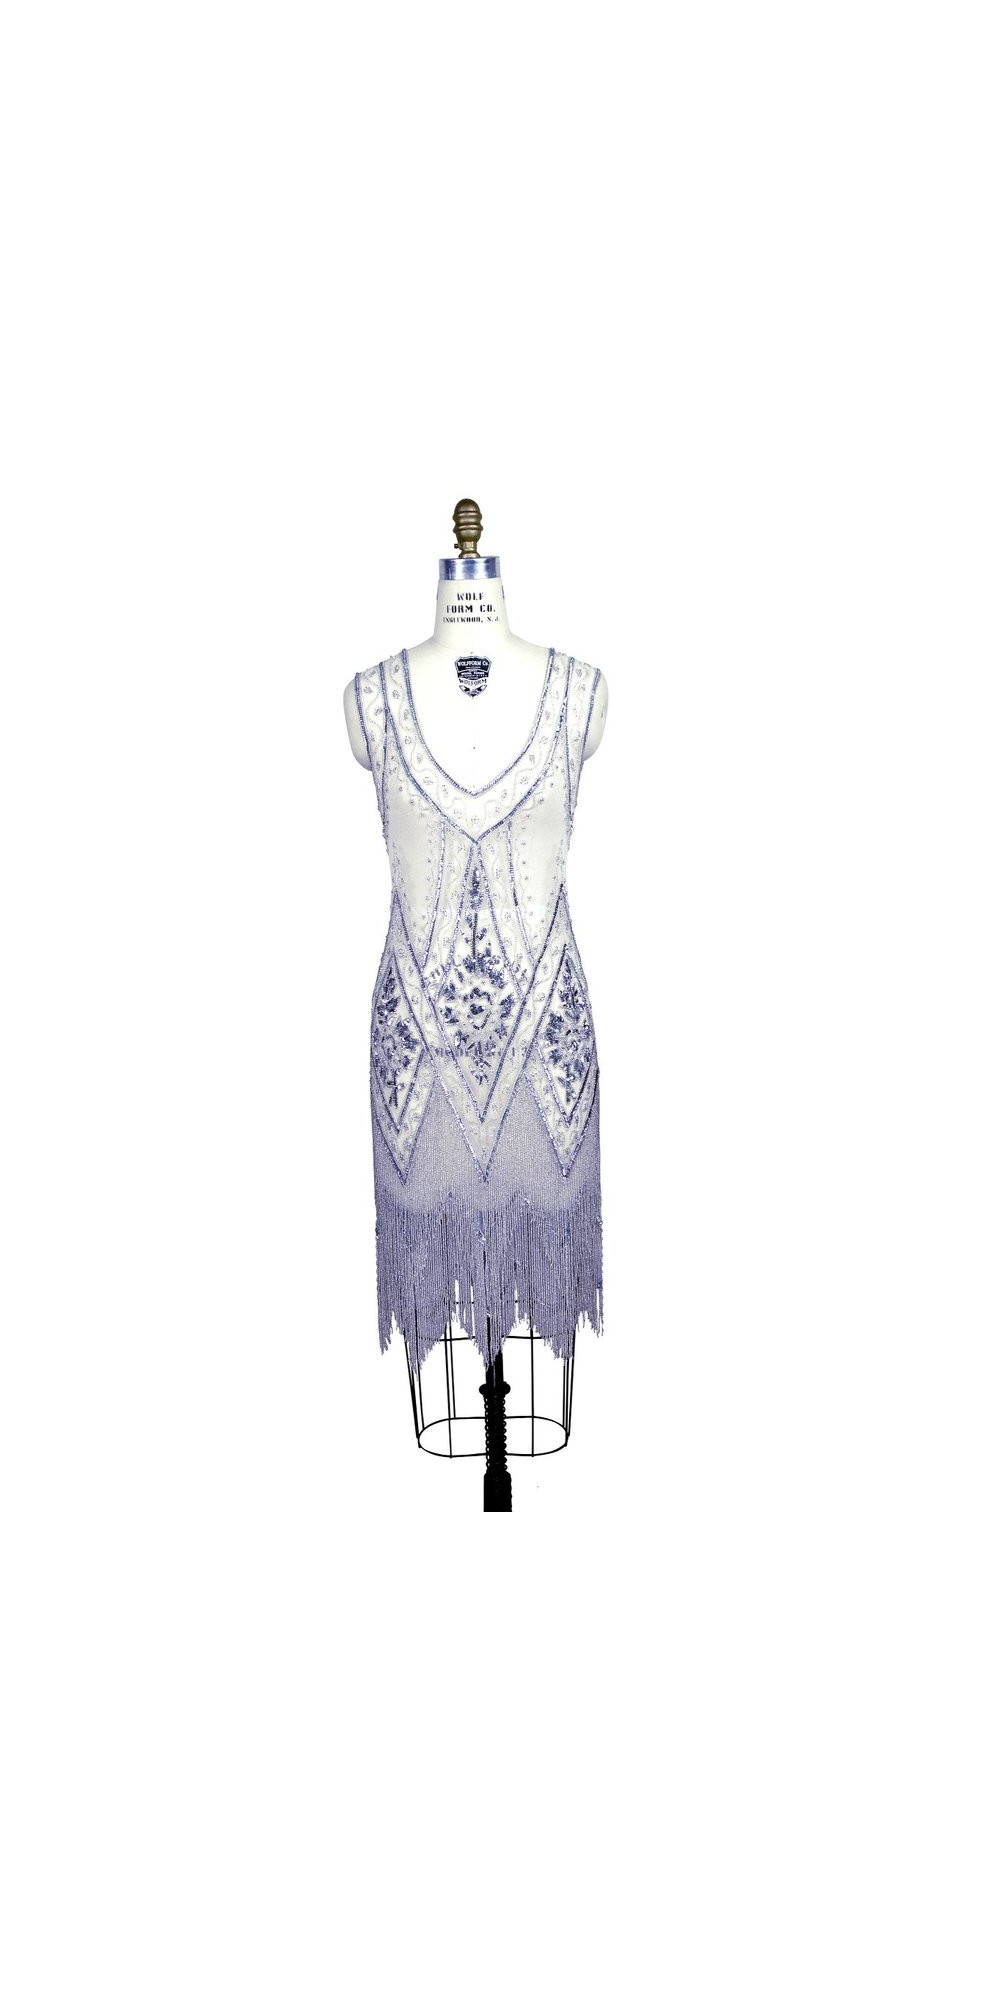 Wolf Haus Reggio Emilia 1920s style fringe party dress in silver/white by the deco haus